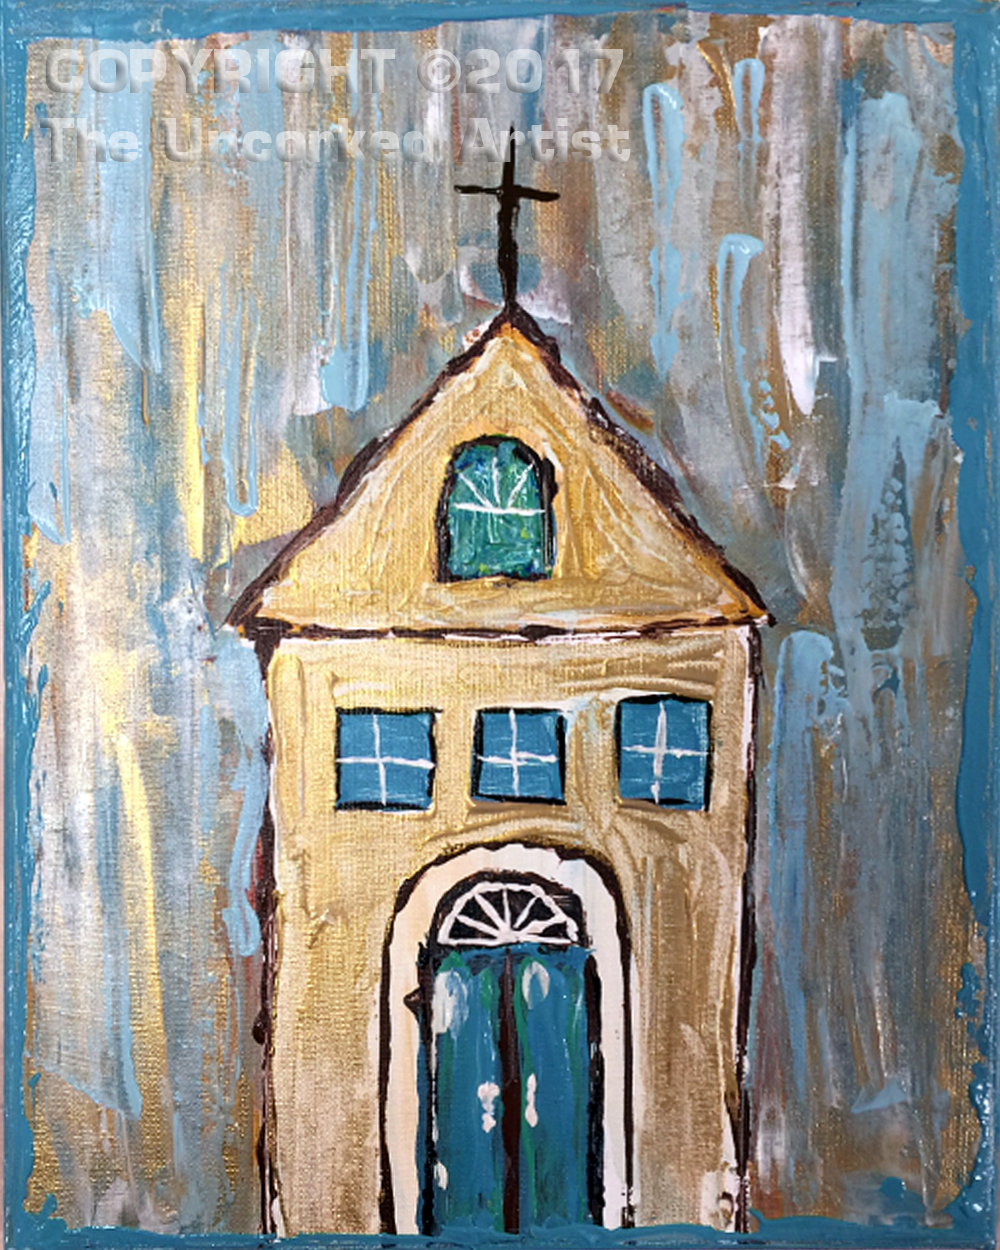 Pallet Knife Church (#478) • Created by Tara • 11×14 • Tier 3